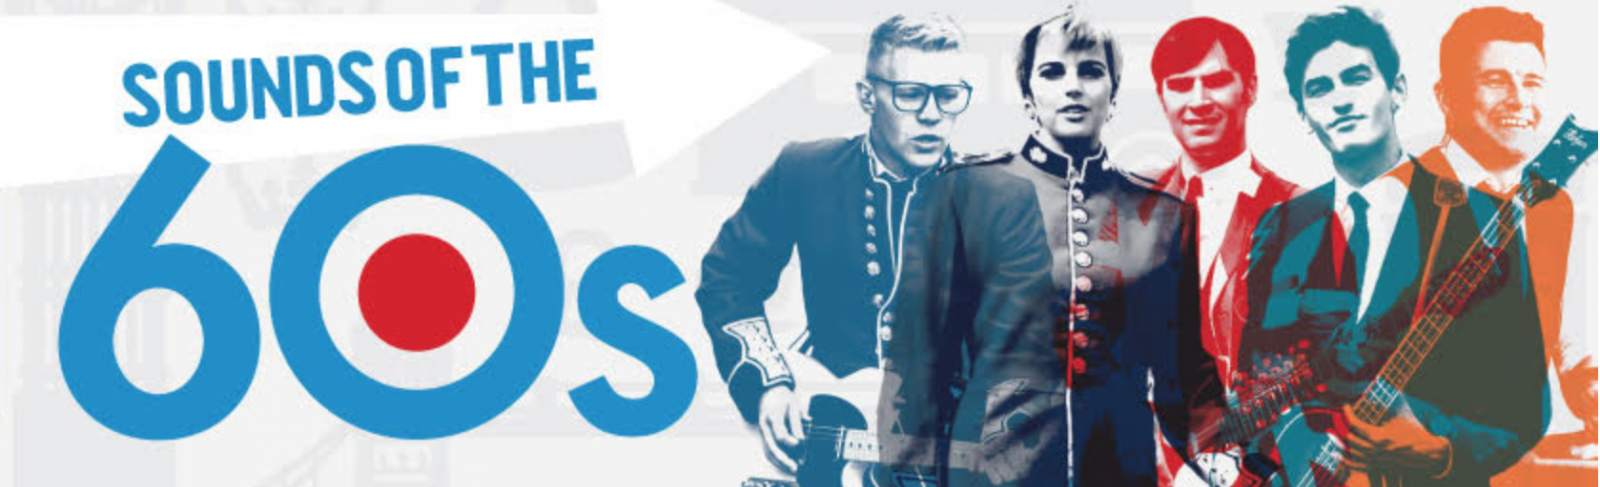 The Zoots: The Sounds of the 60's